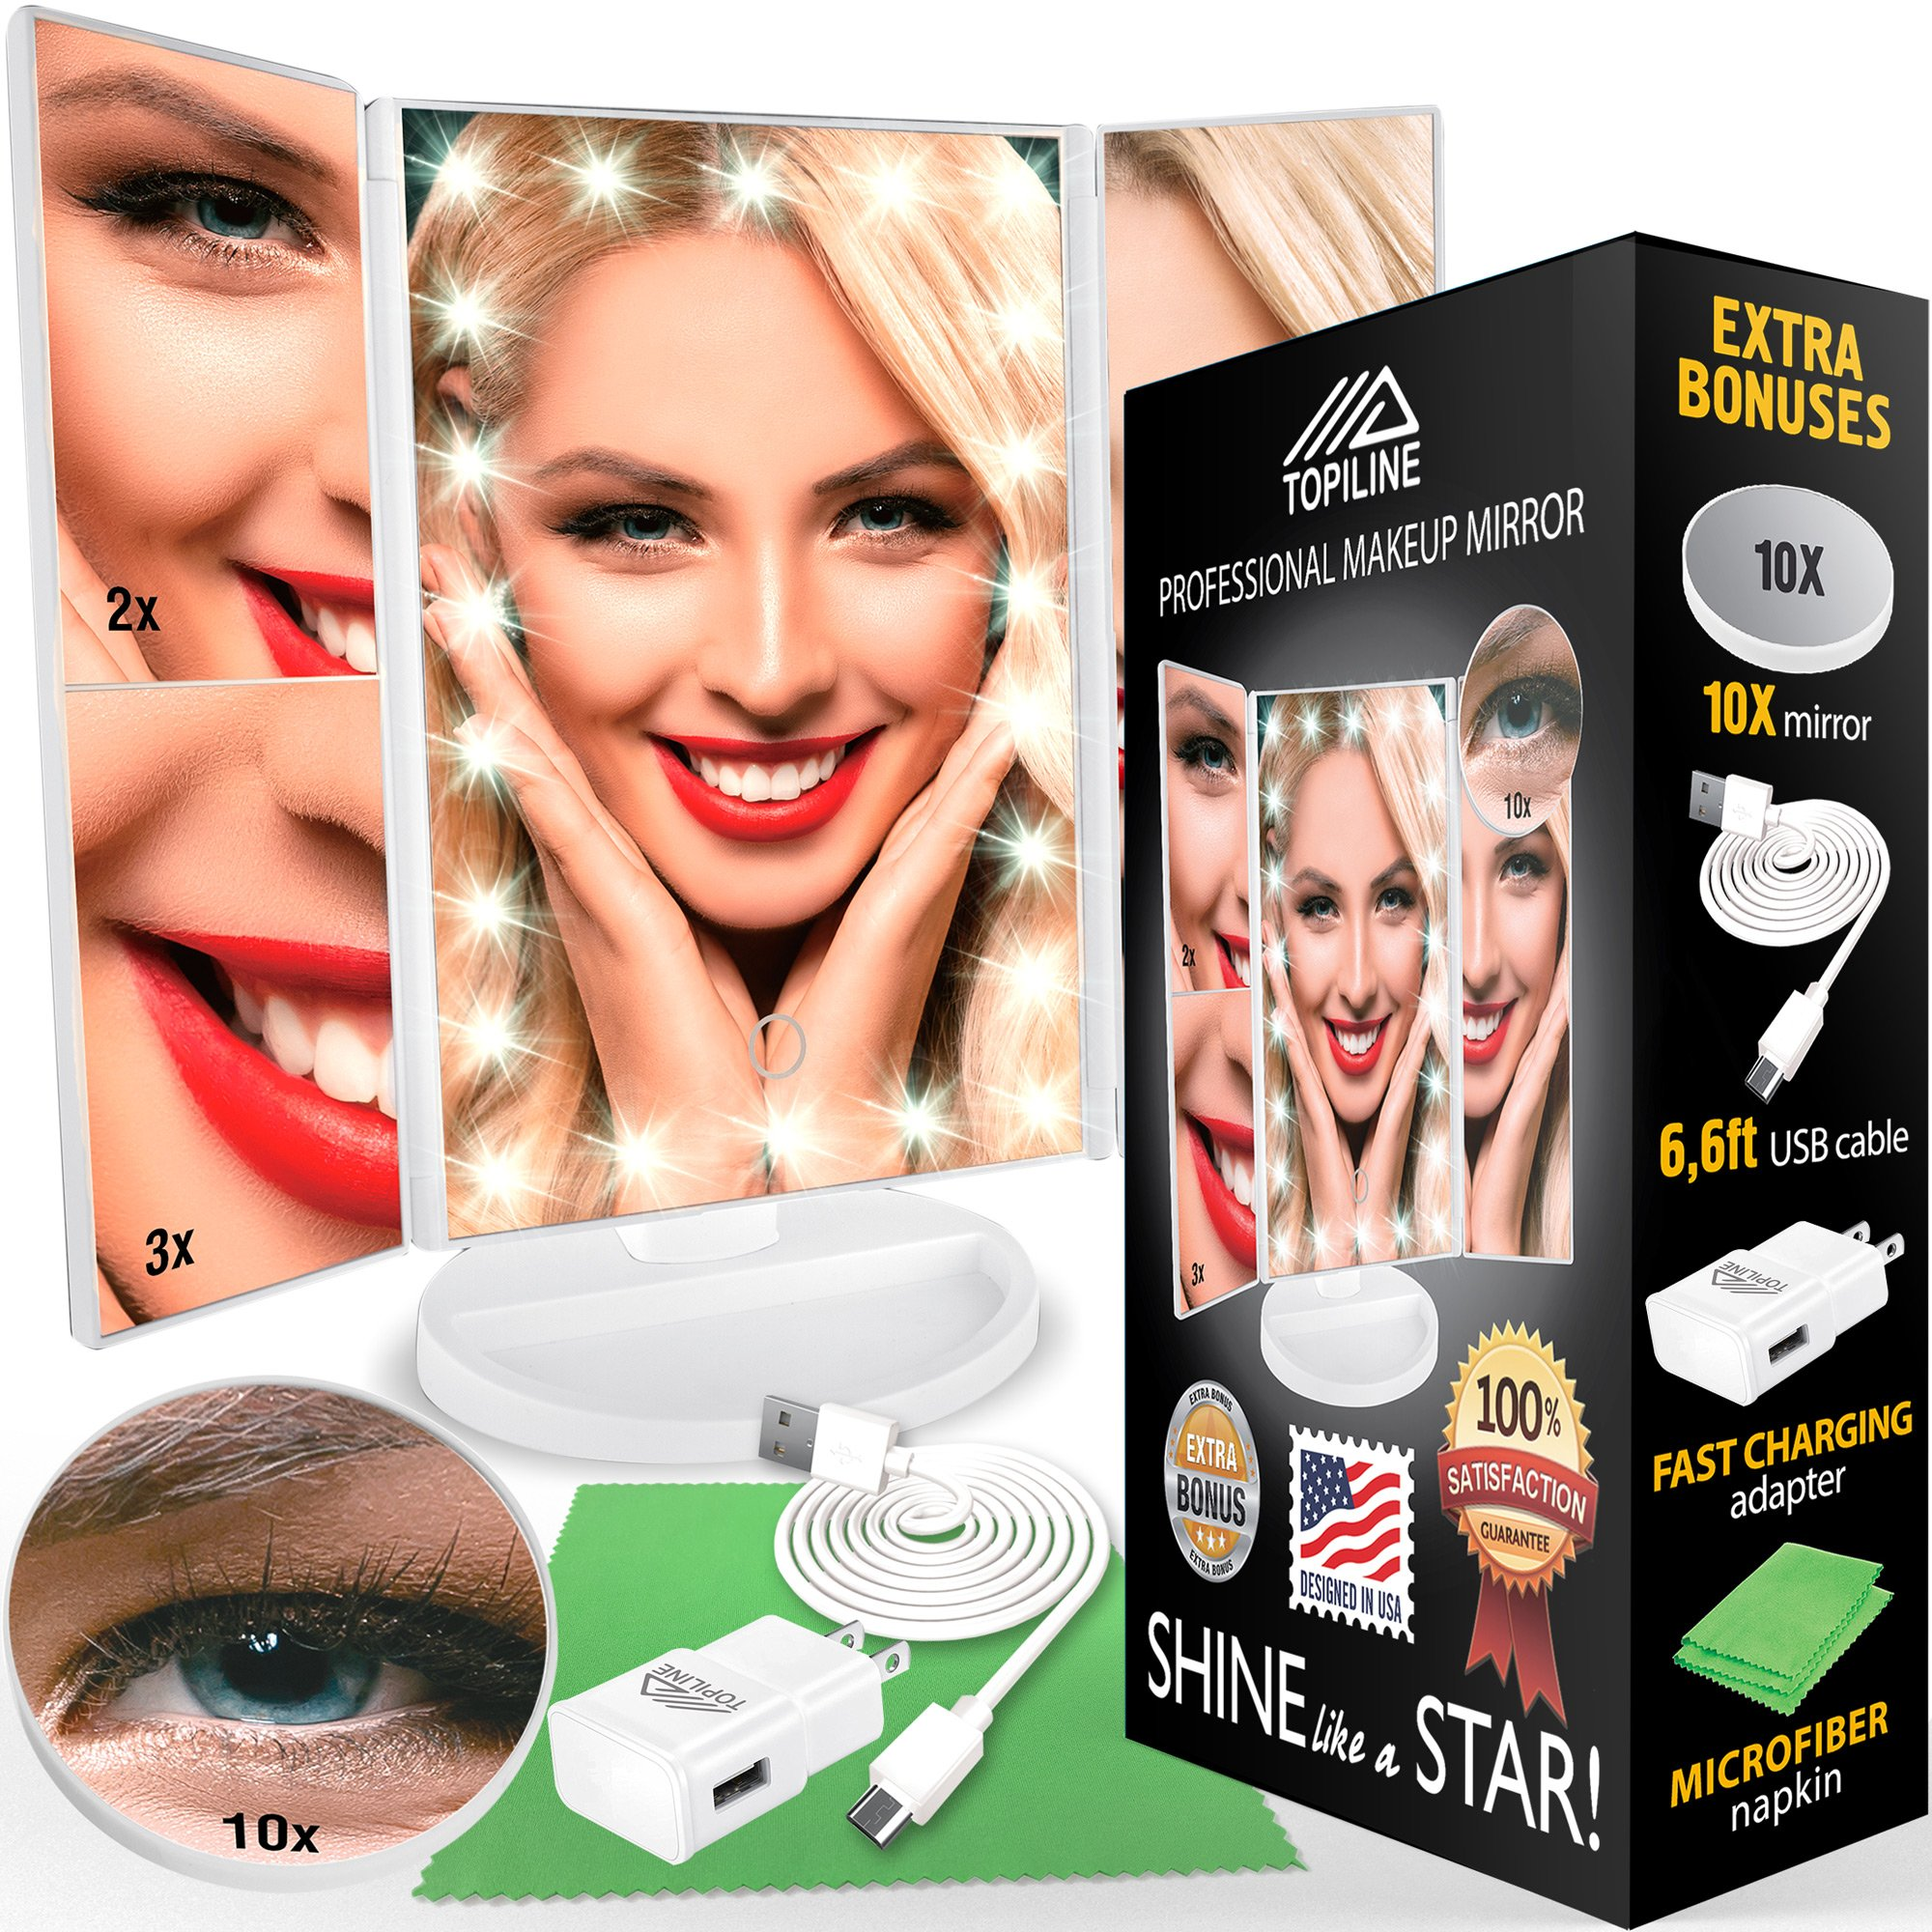 Lighted Makeup Mirror with Lights - Makeup Vanity Mirror with Lights and Magnification - Make up Mirrors Lighted Magnifying - Portable Trifold Cosmetic Mirror with Long 6.6ft USB Cable and Charger